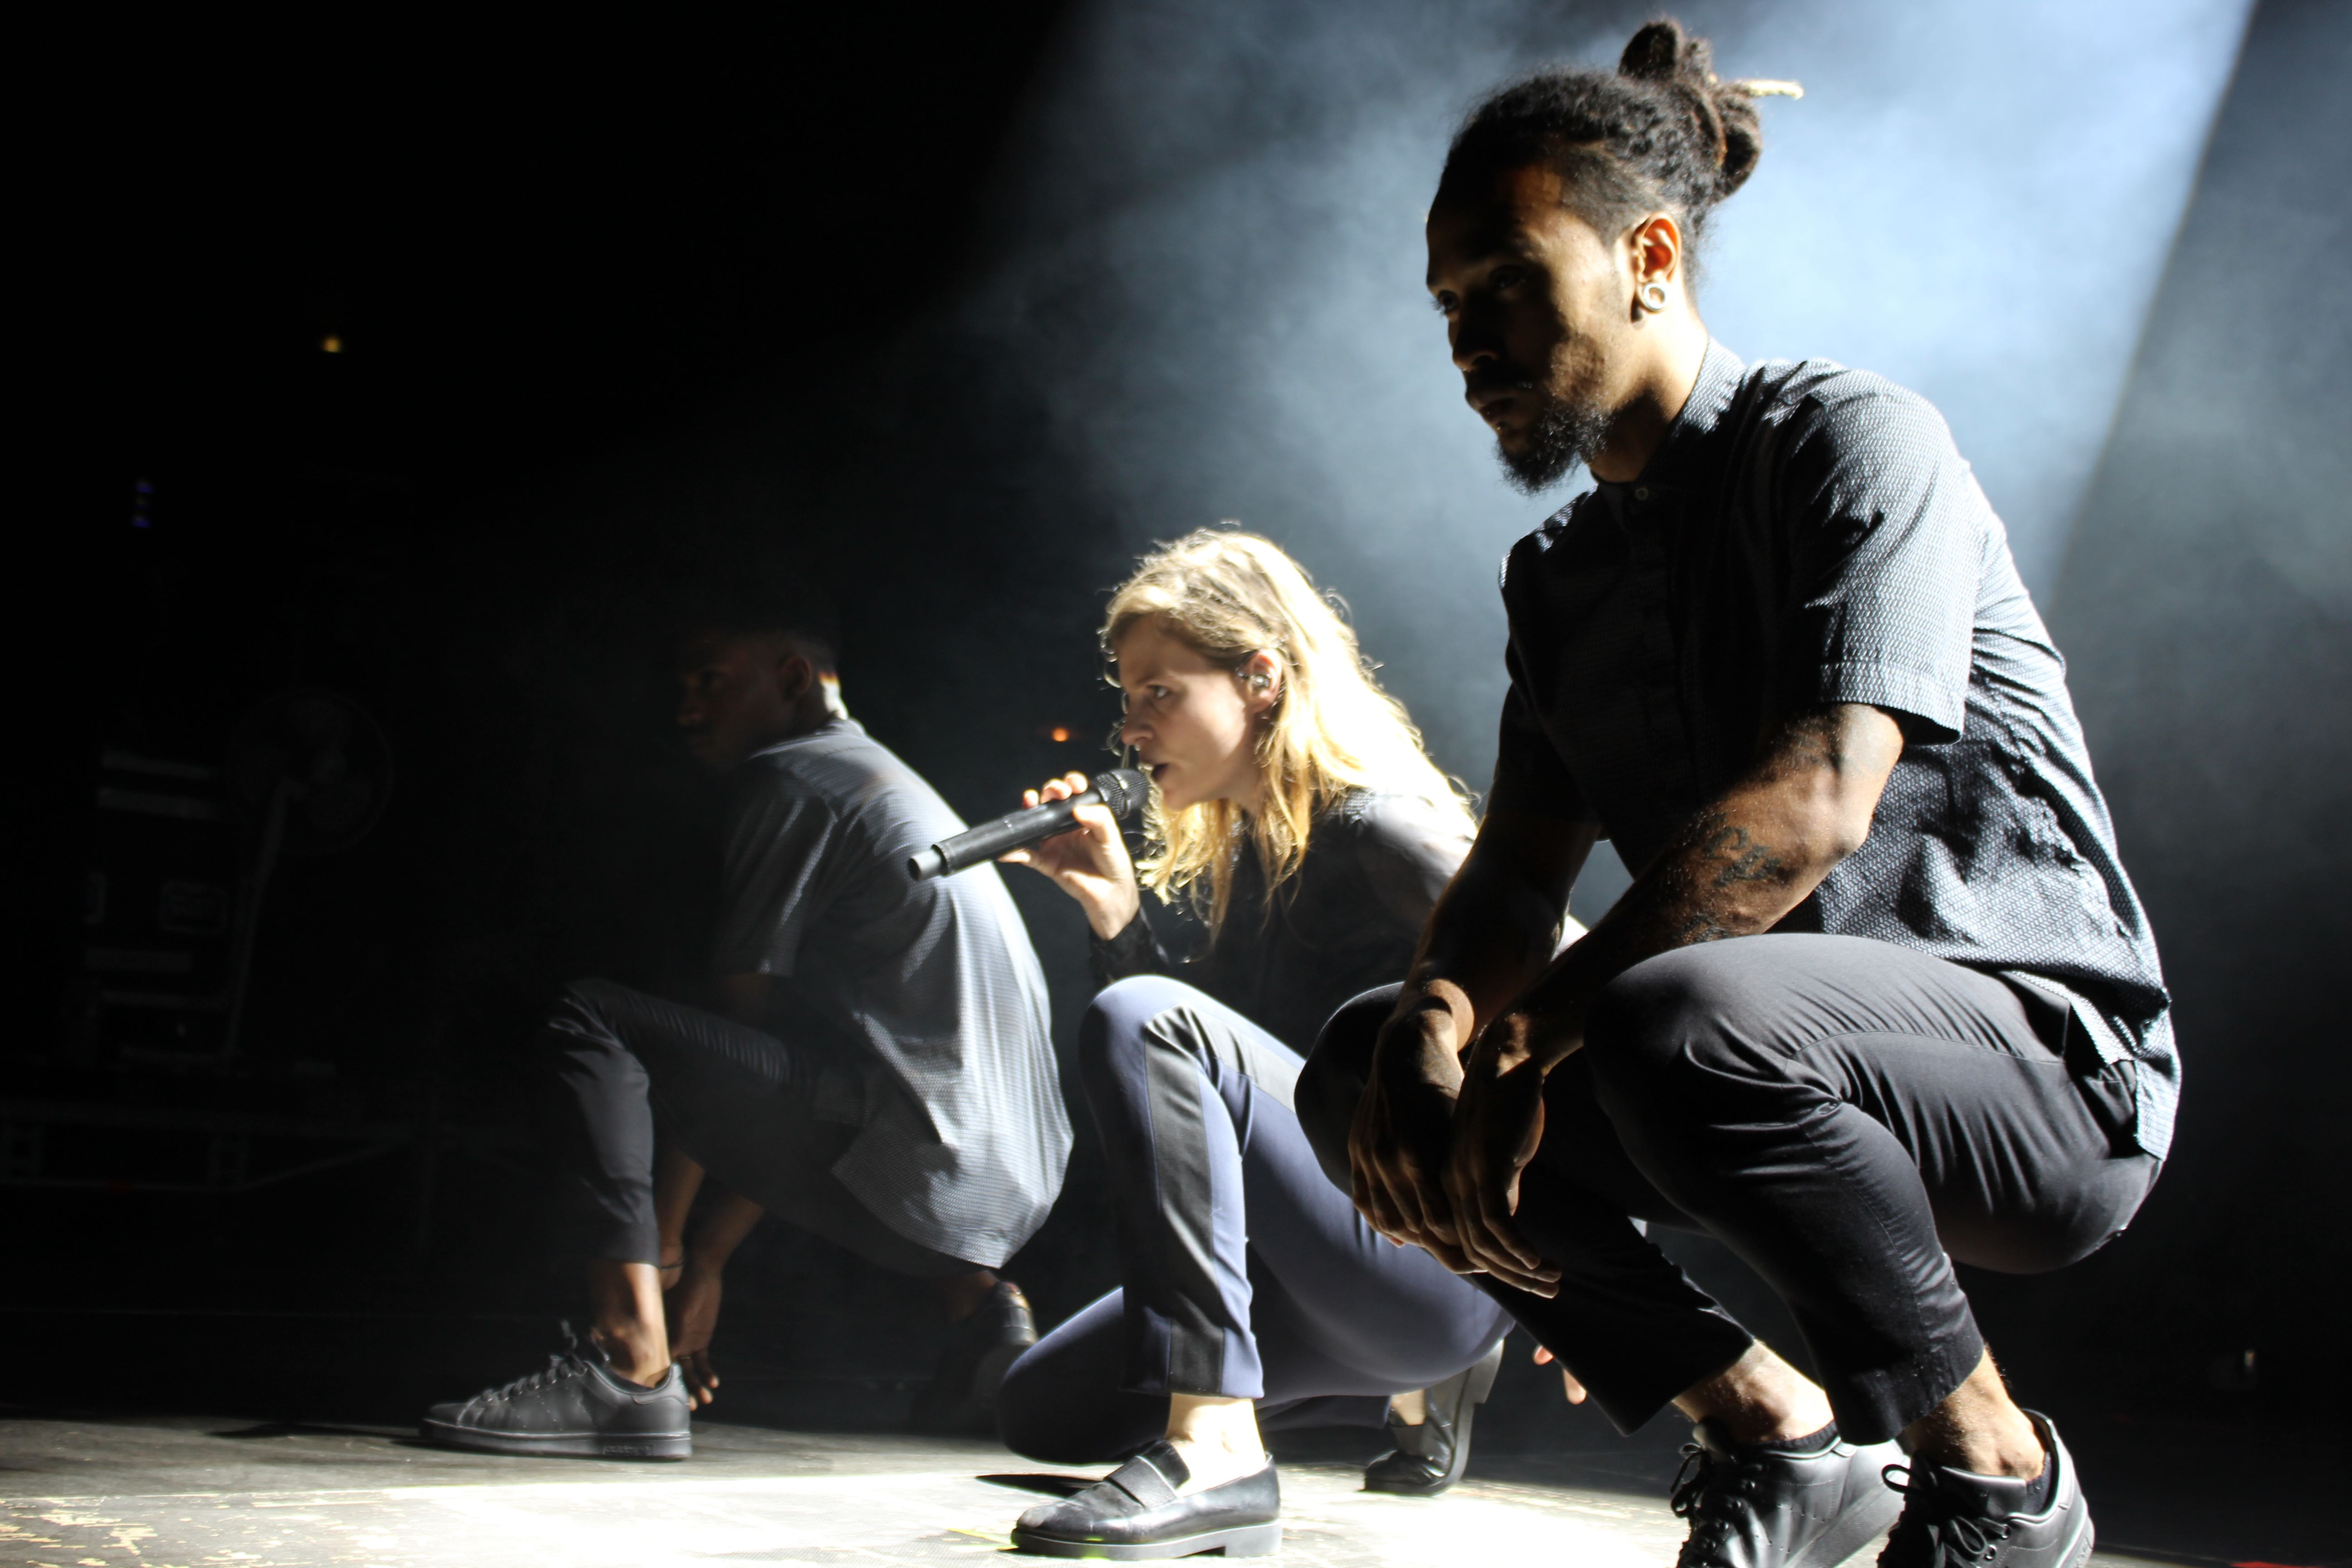 Photo of NÎMES En images : Christine and the Queens, Daho et Benjamin Clementine aux Arènes